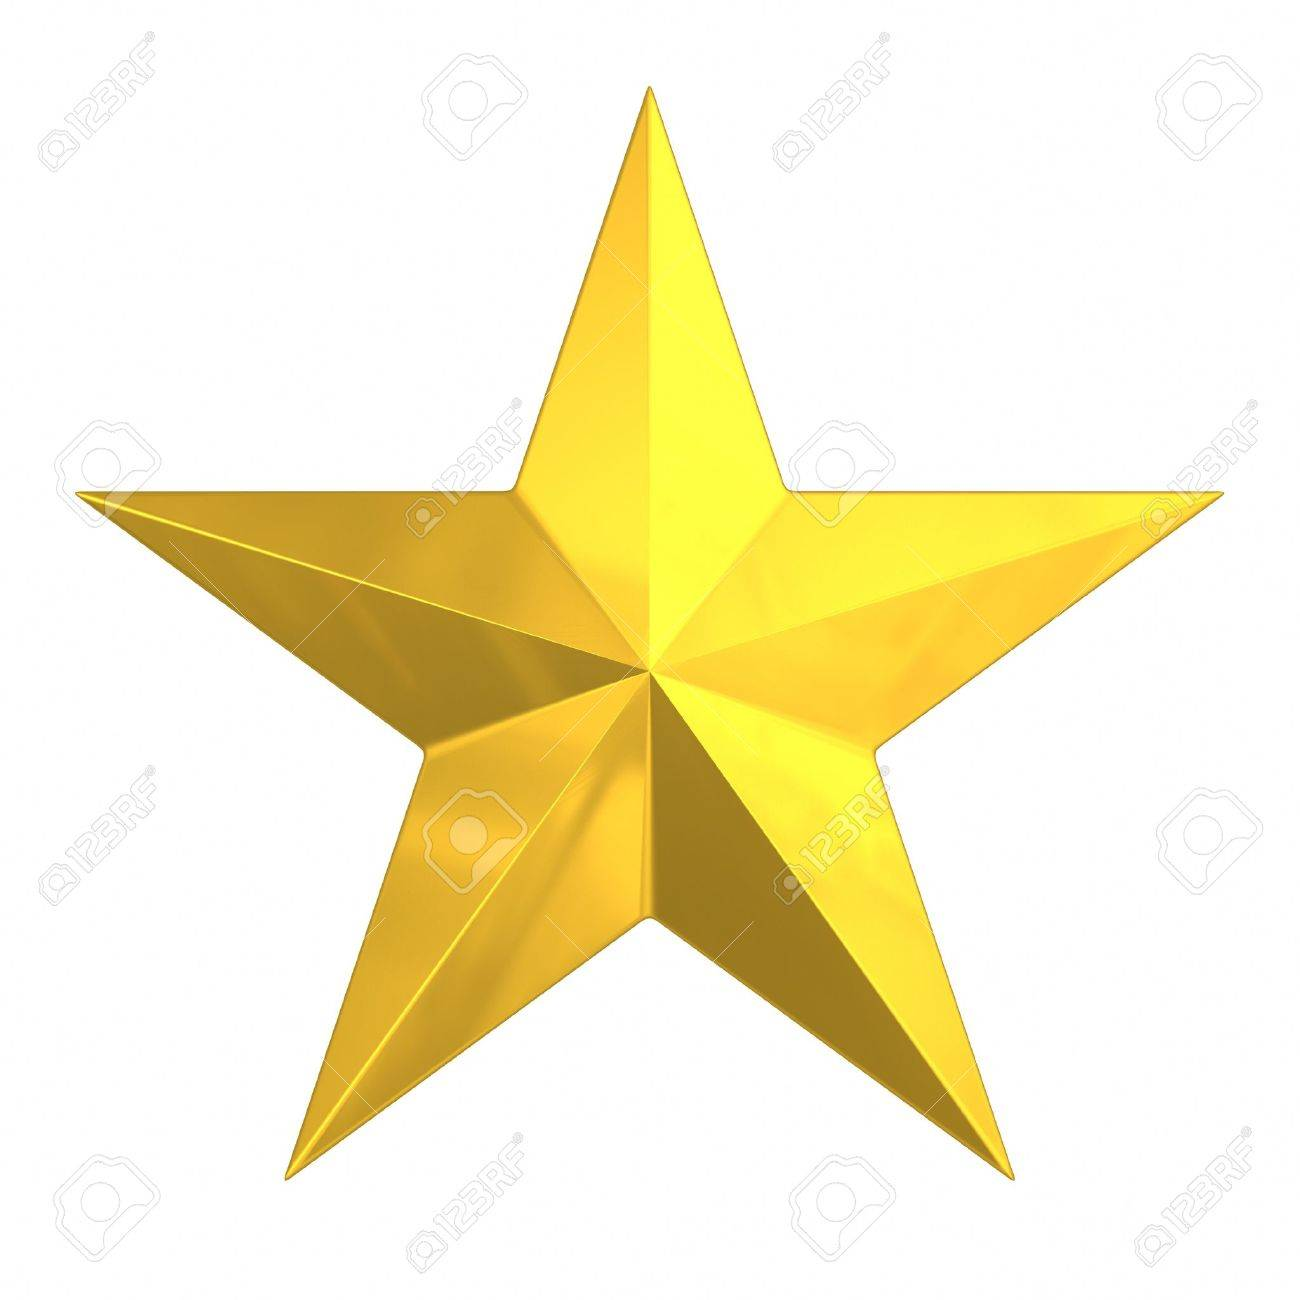 1300x1300 Gold Star Images Amp Stock Pictures. Royalty Free Gold Star Photos